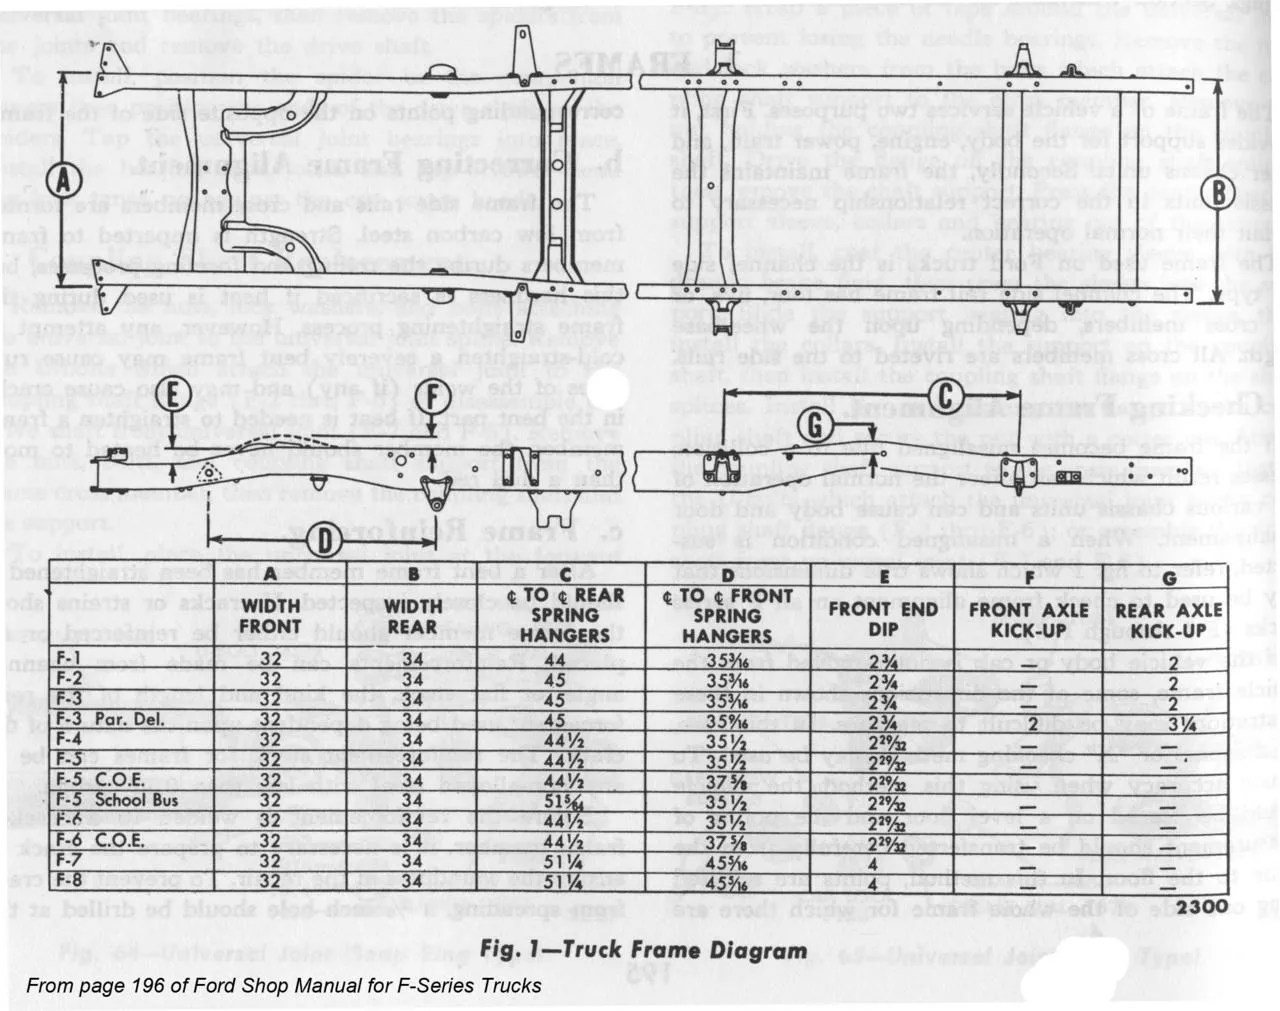 hight resolution of 5 ton truck frame diagram use wiring diagram 1949 f1 to f3 frame difference ford truck